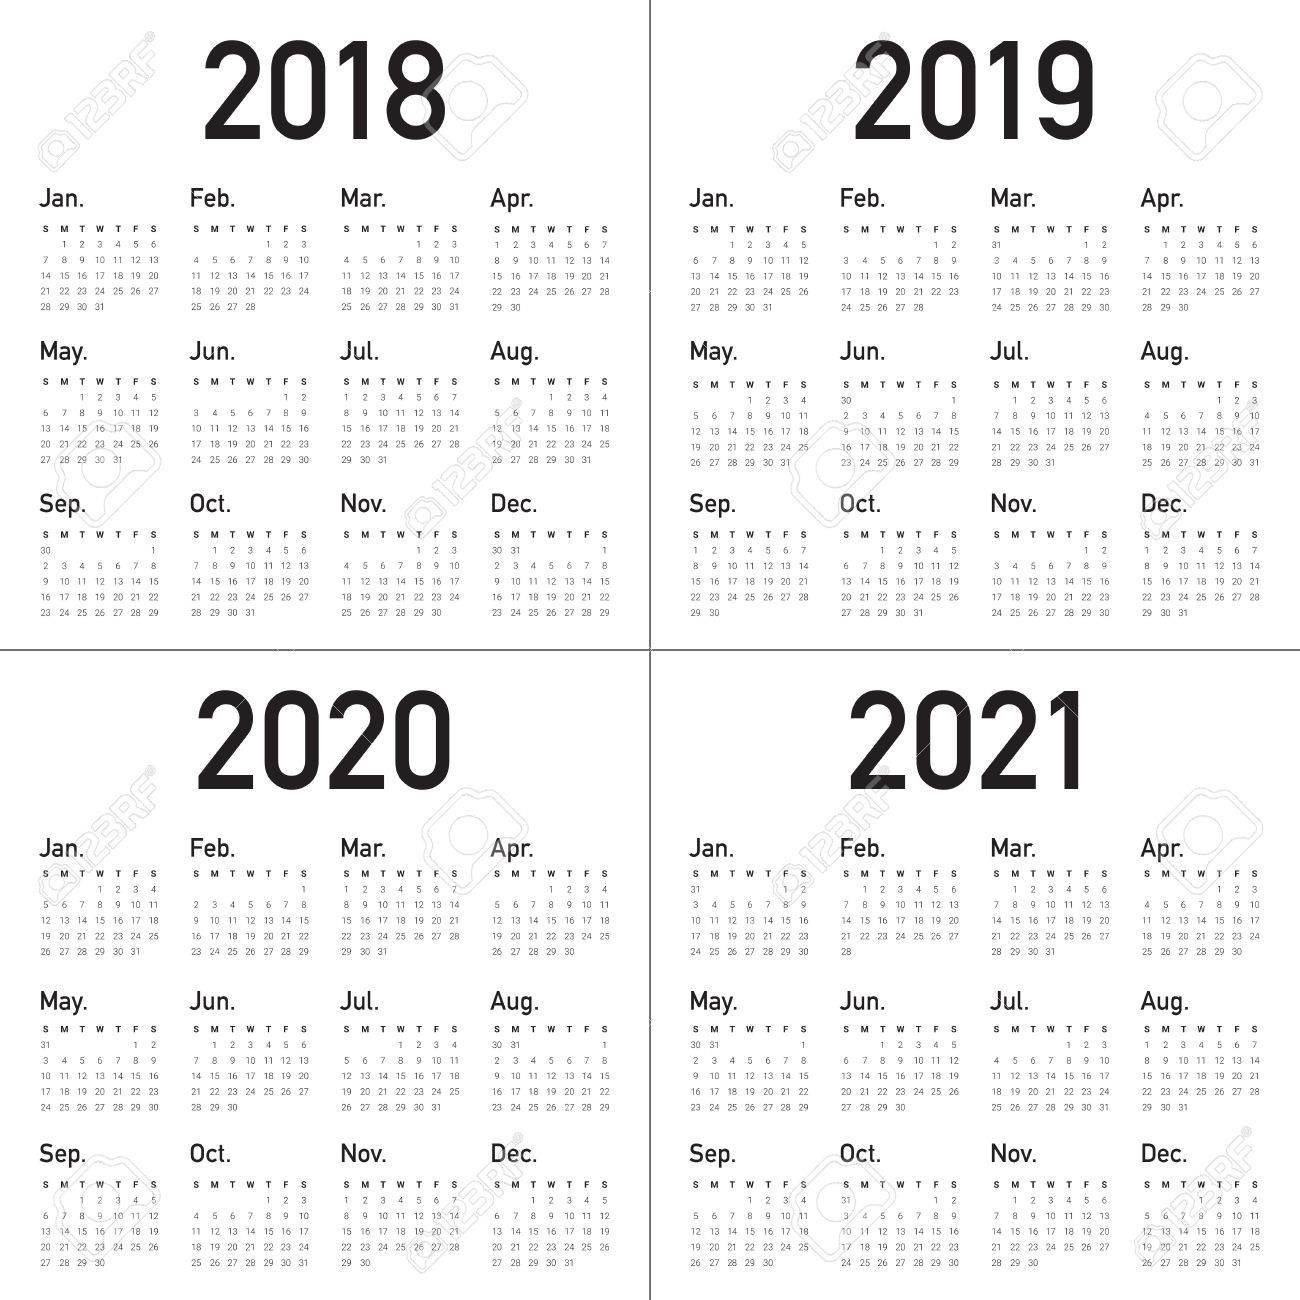 Year 2018 2019 2020 2021 Calendar Vector Design Template, Simple Calendar 2019 To 2020